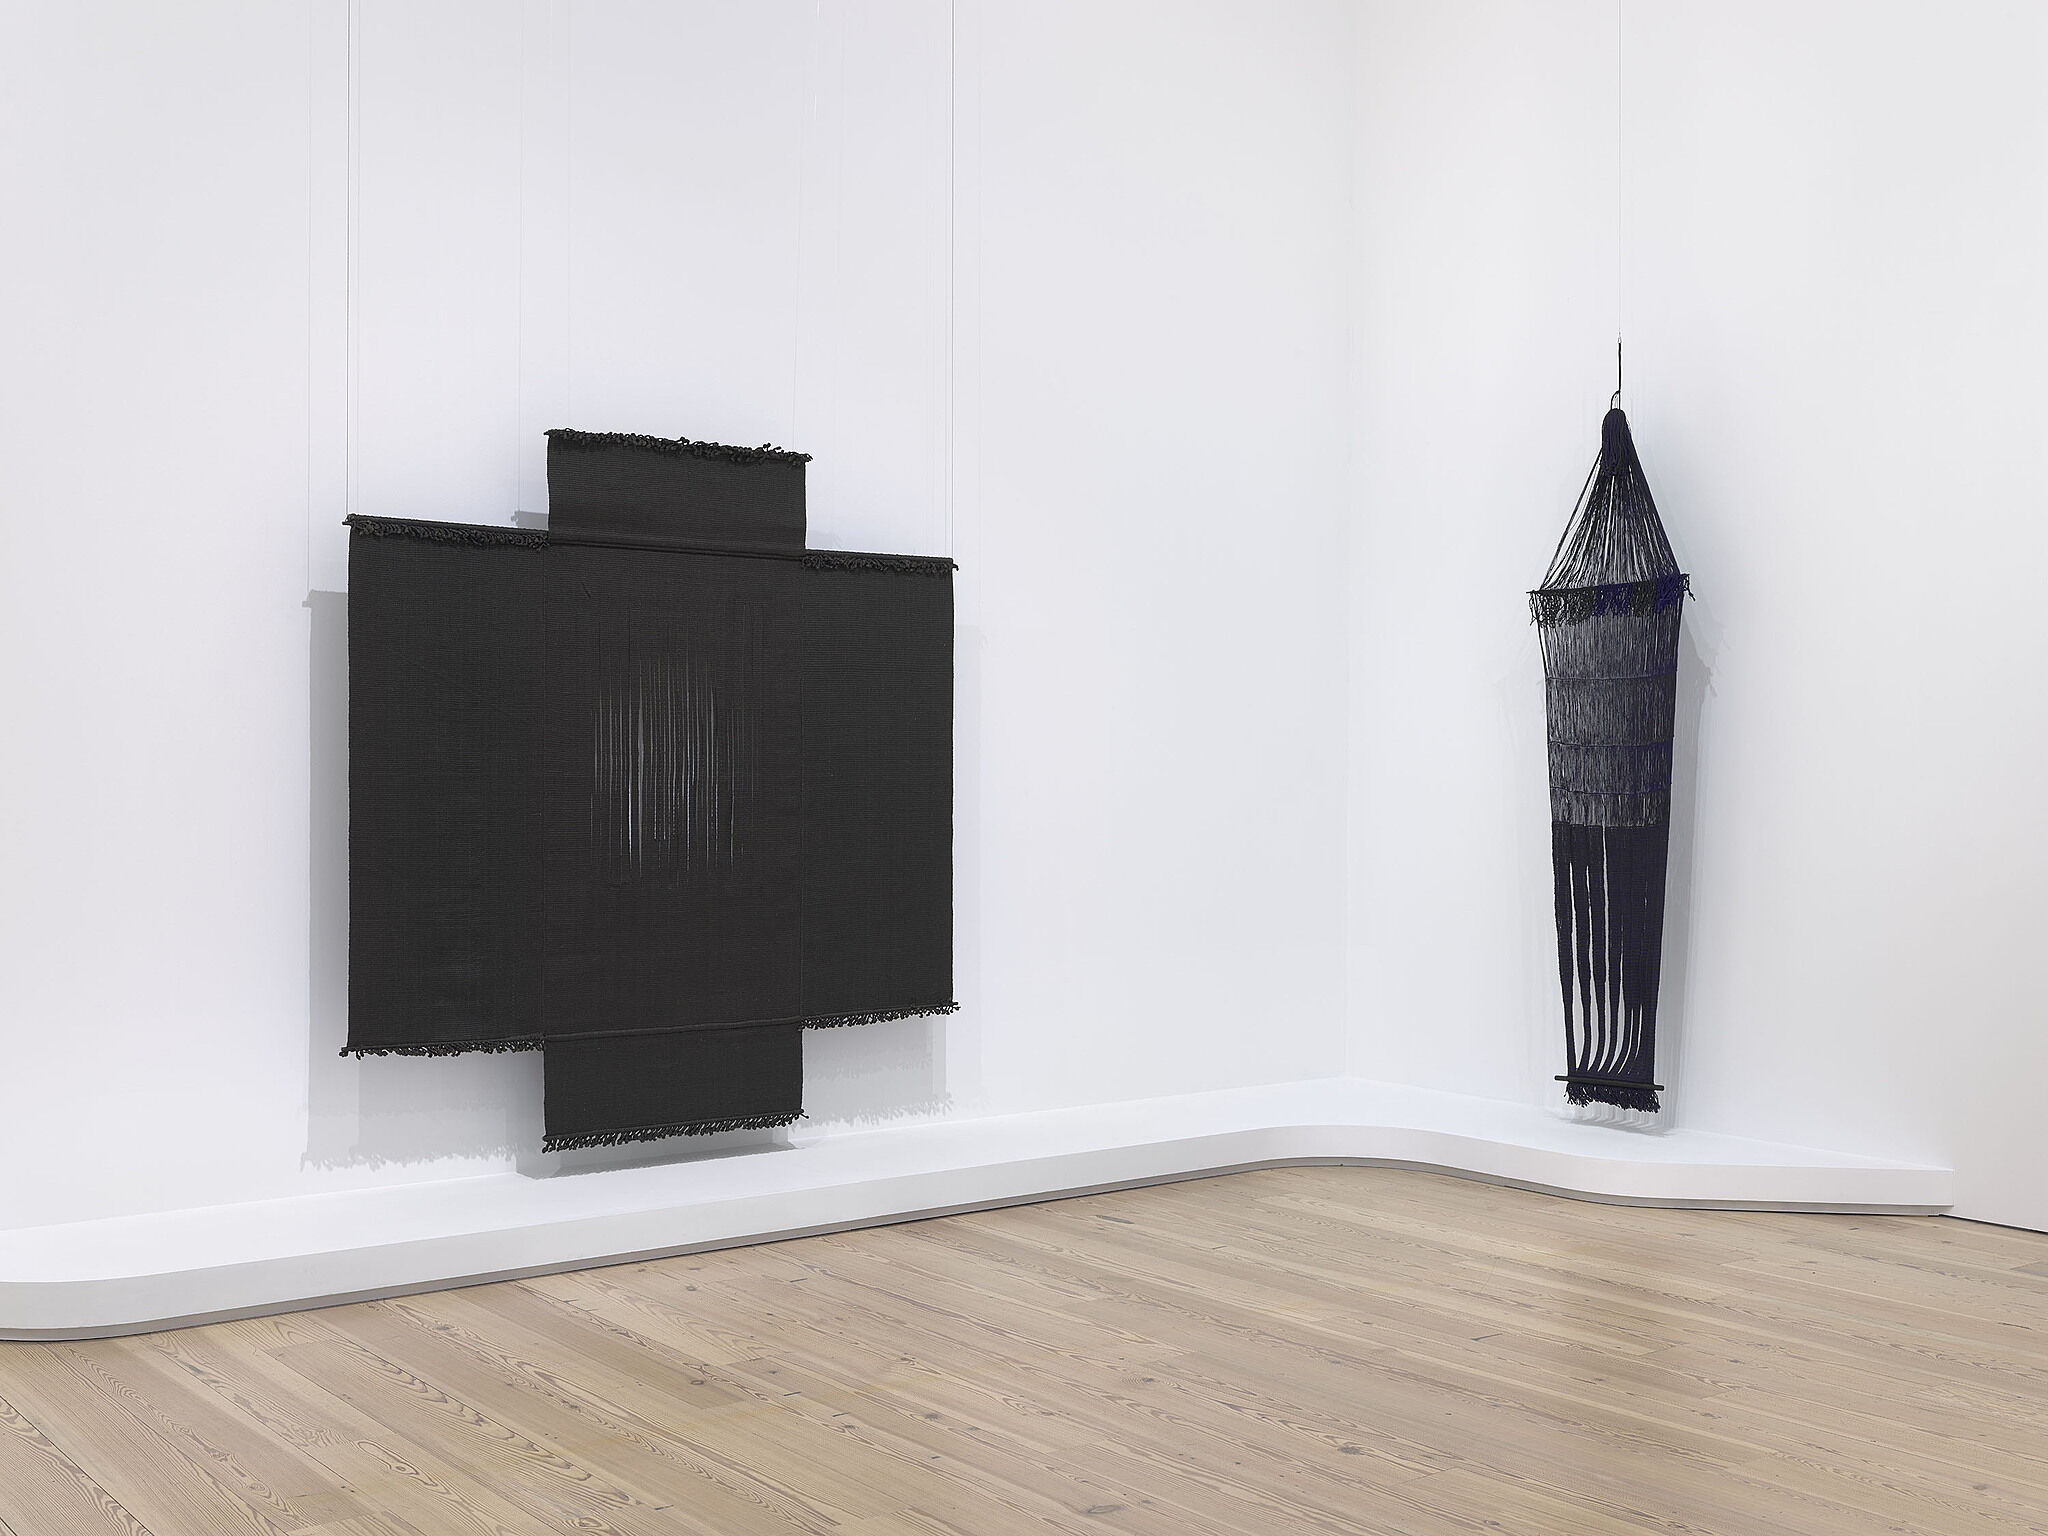 A photo of a Whitney gallery with two tapestry-like sculptures hanging on the wall.